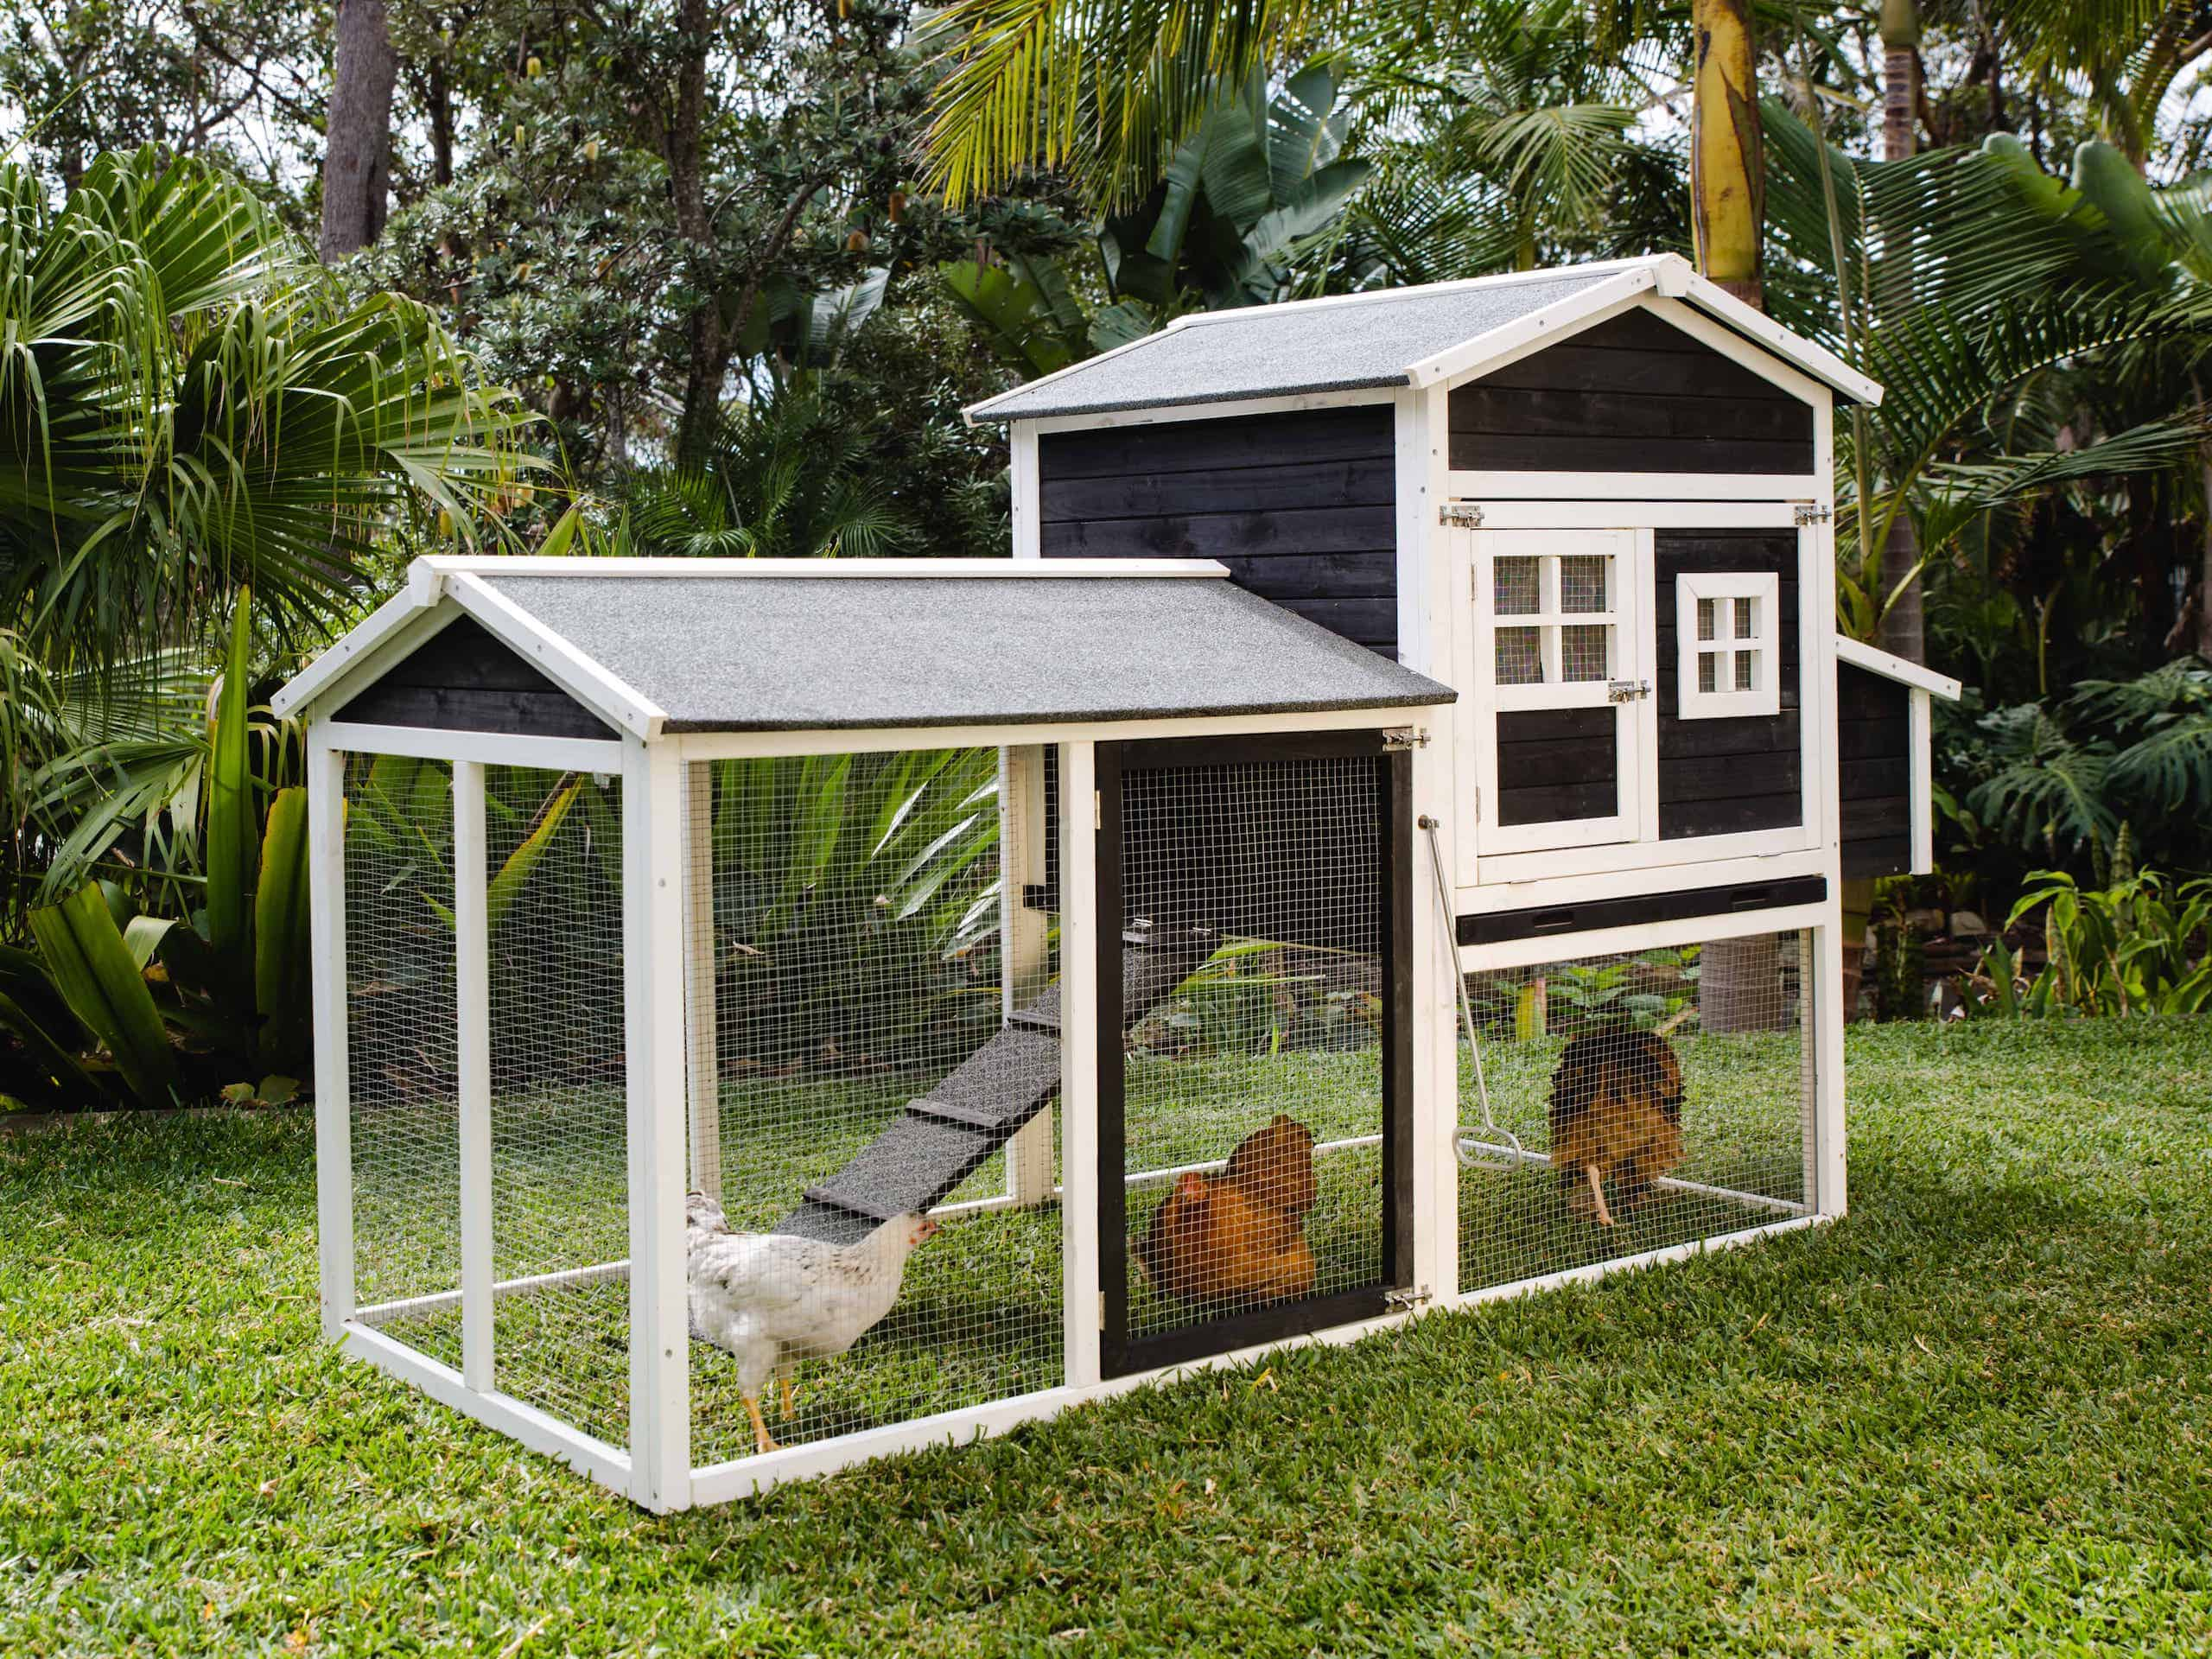 6 Reasons Why A Chicken Coop And Run